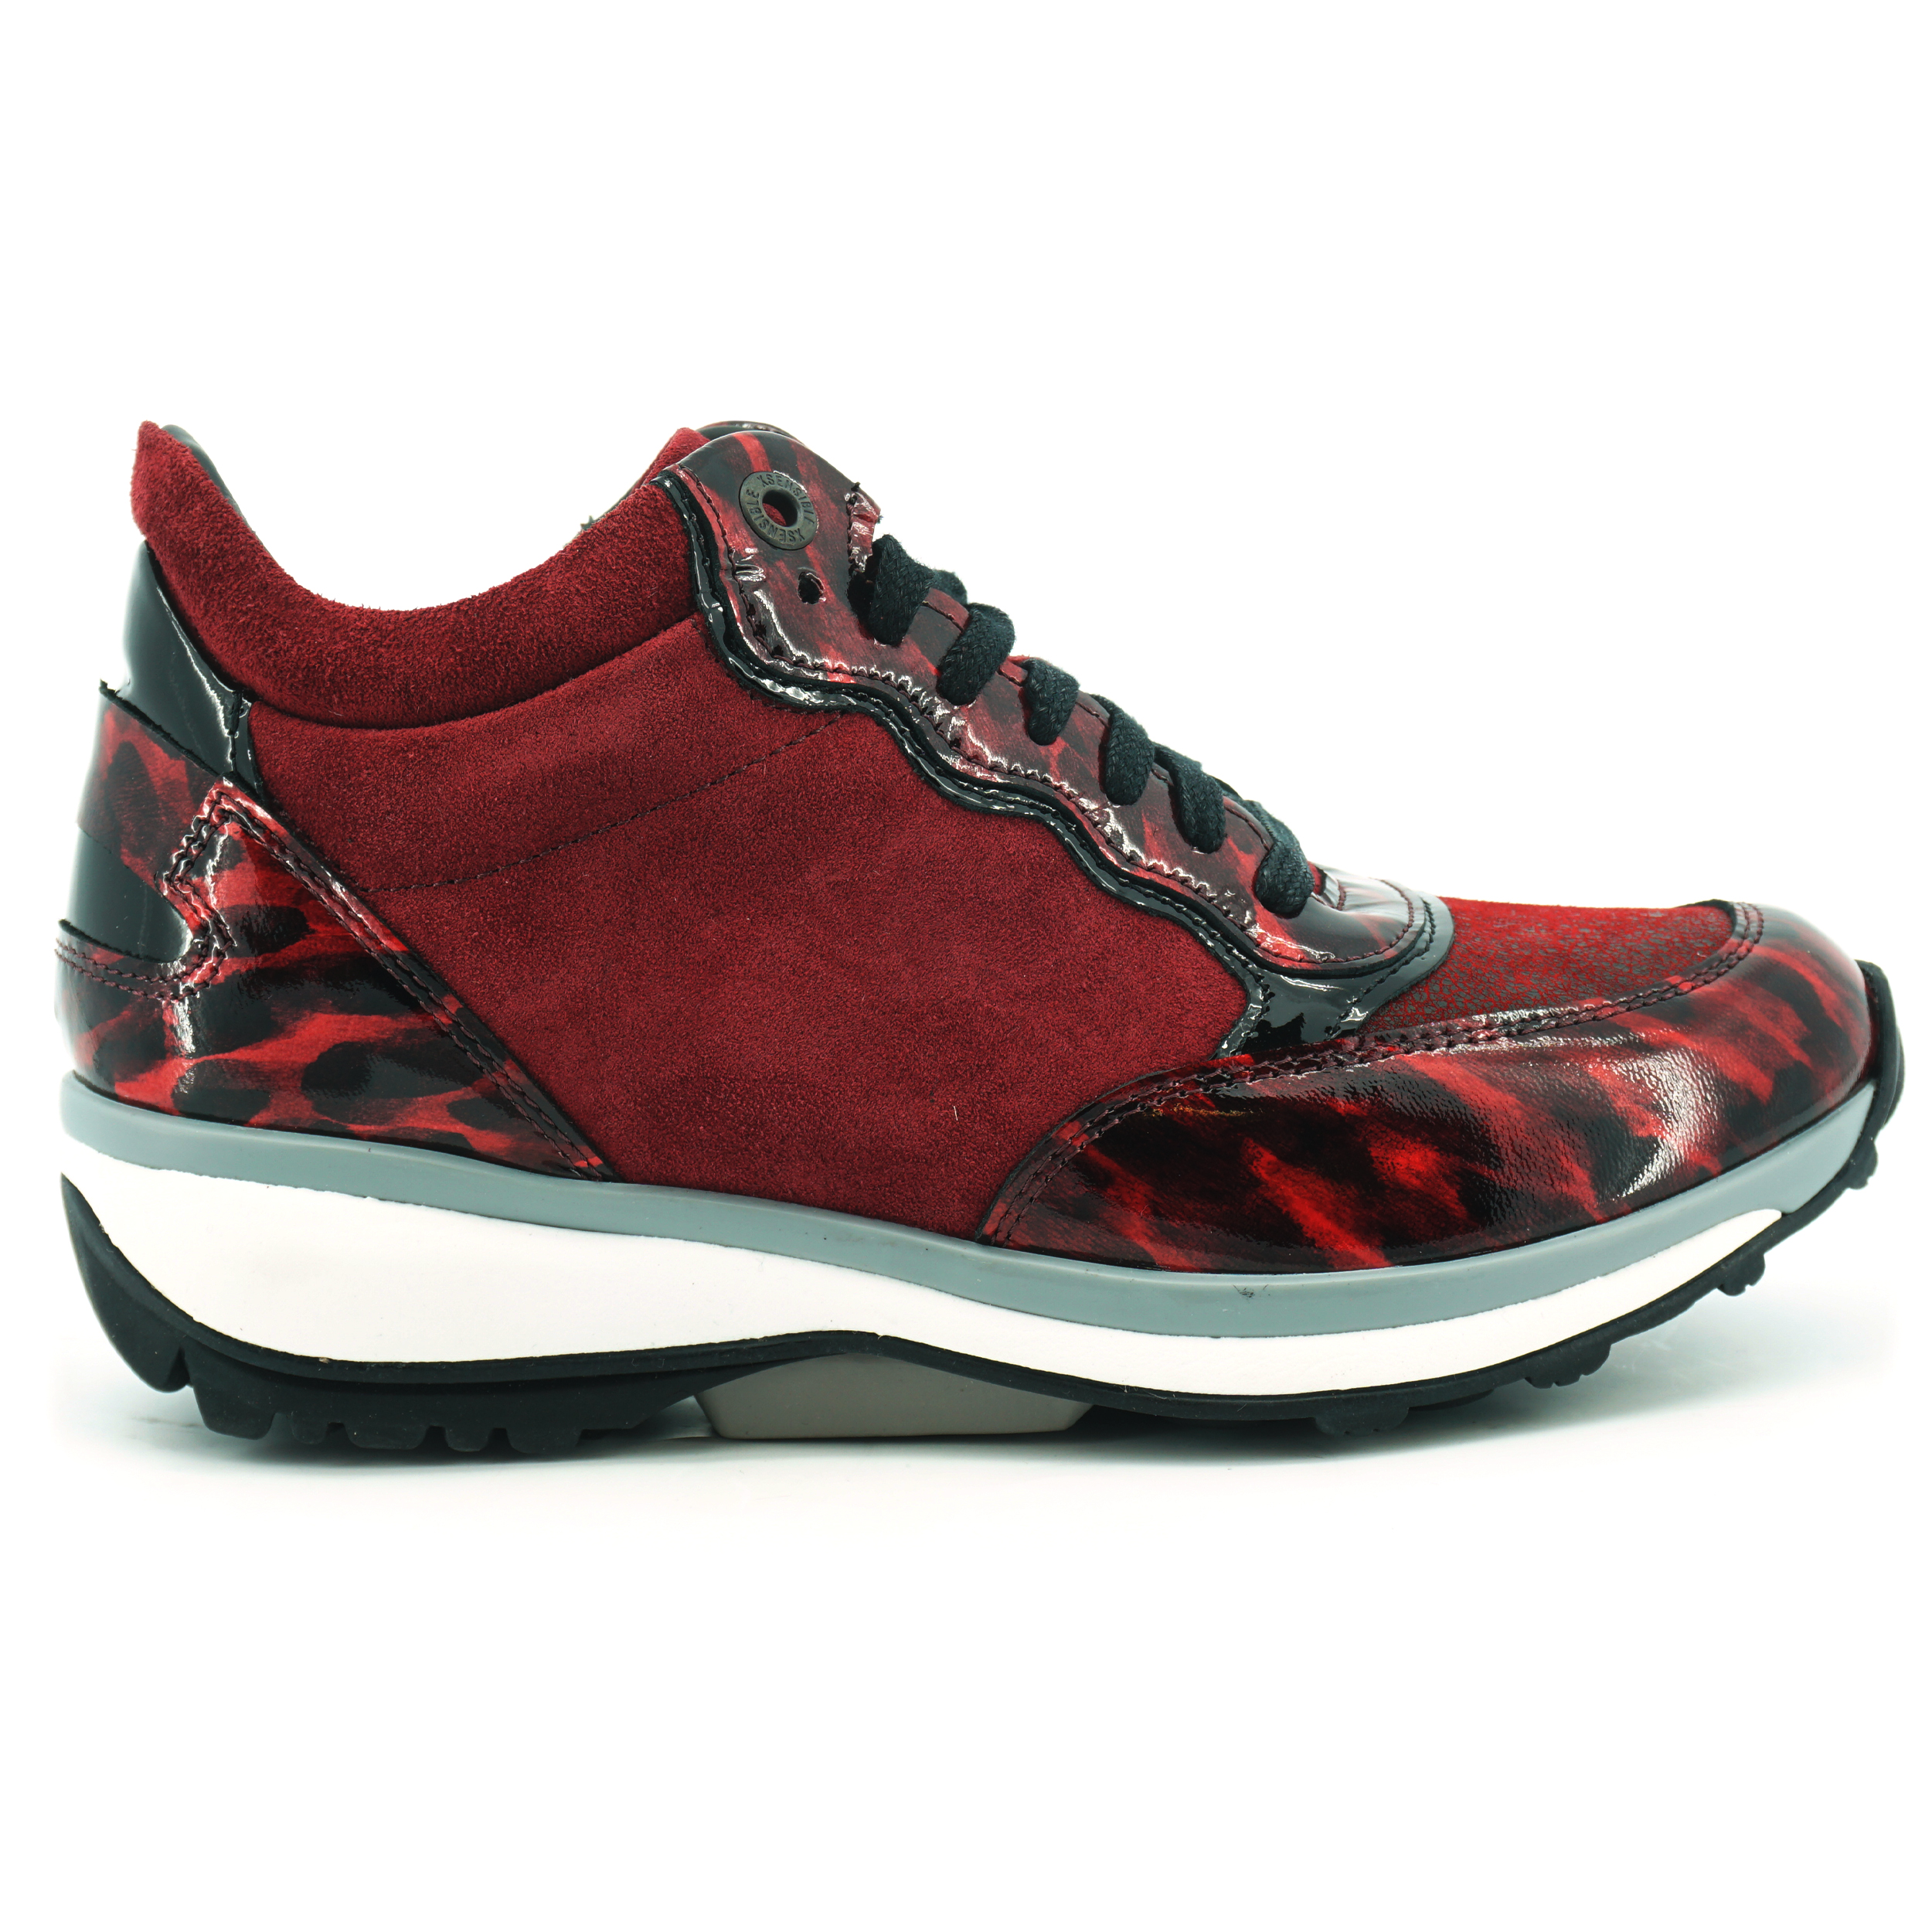 Xsensible Roma sneaker 30059 dames rood G